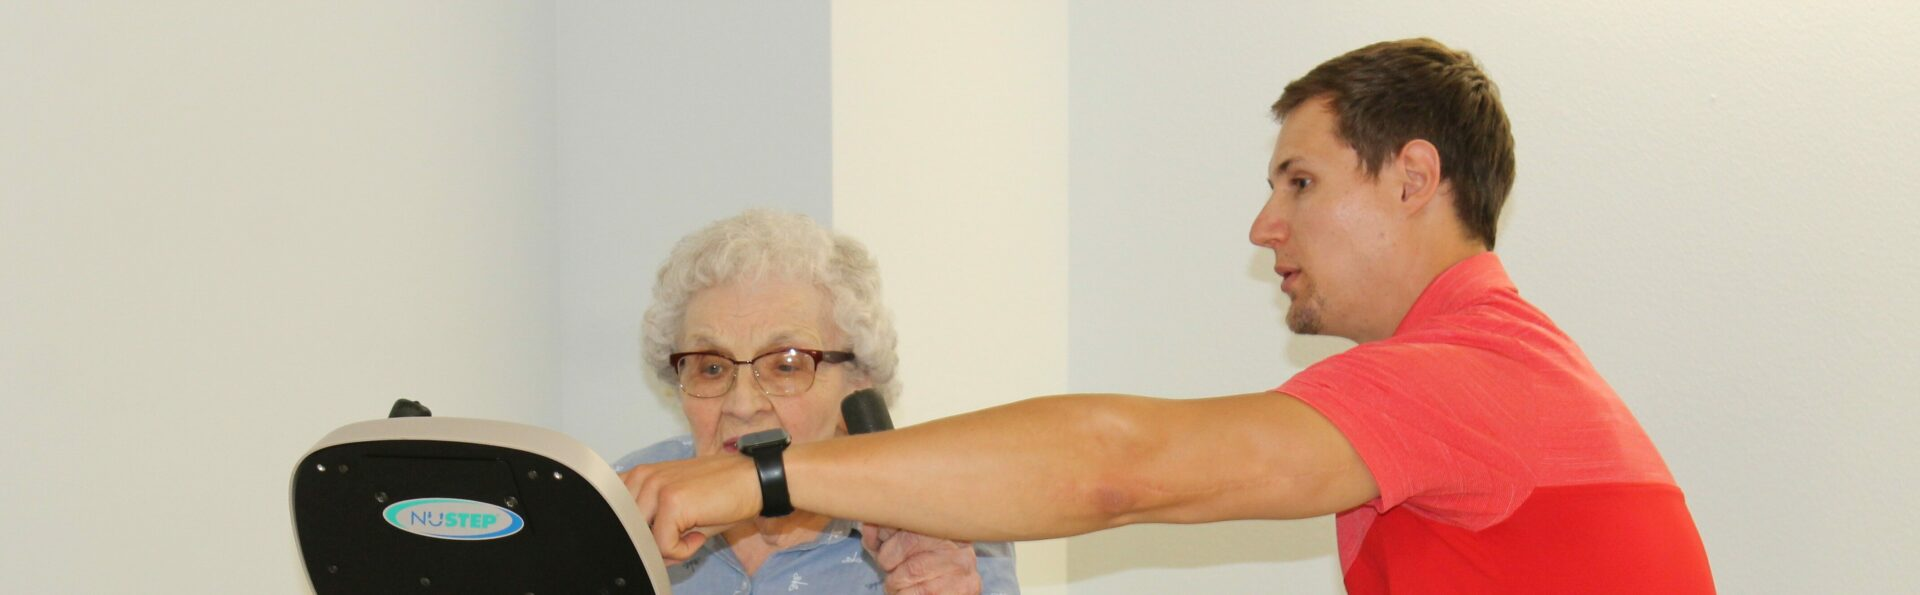 A physical therapist working with an elderly lady.